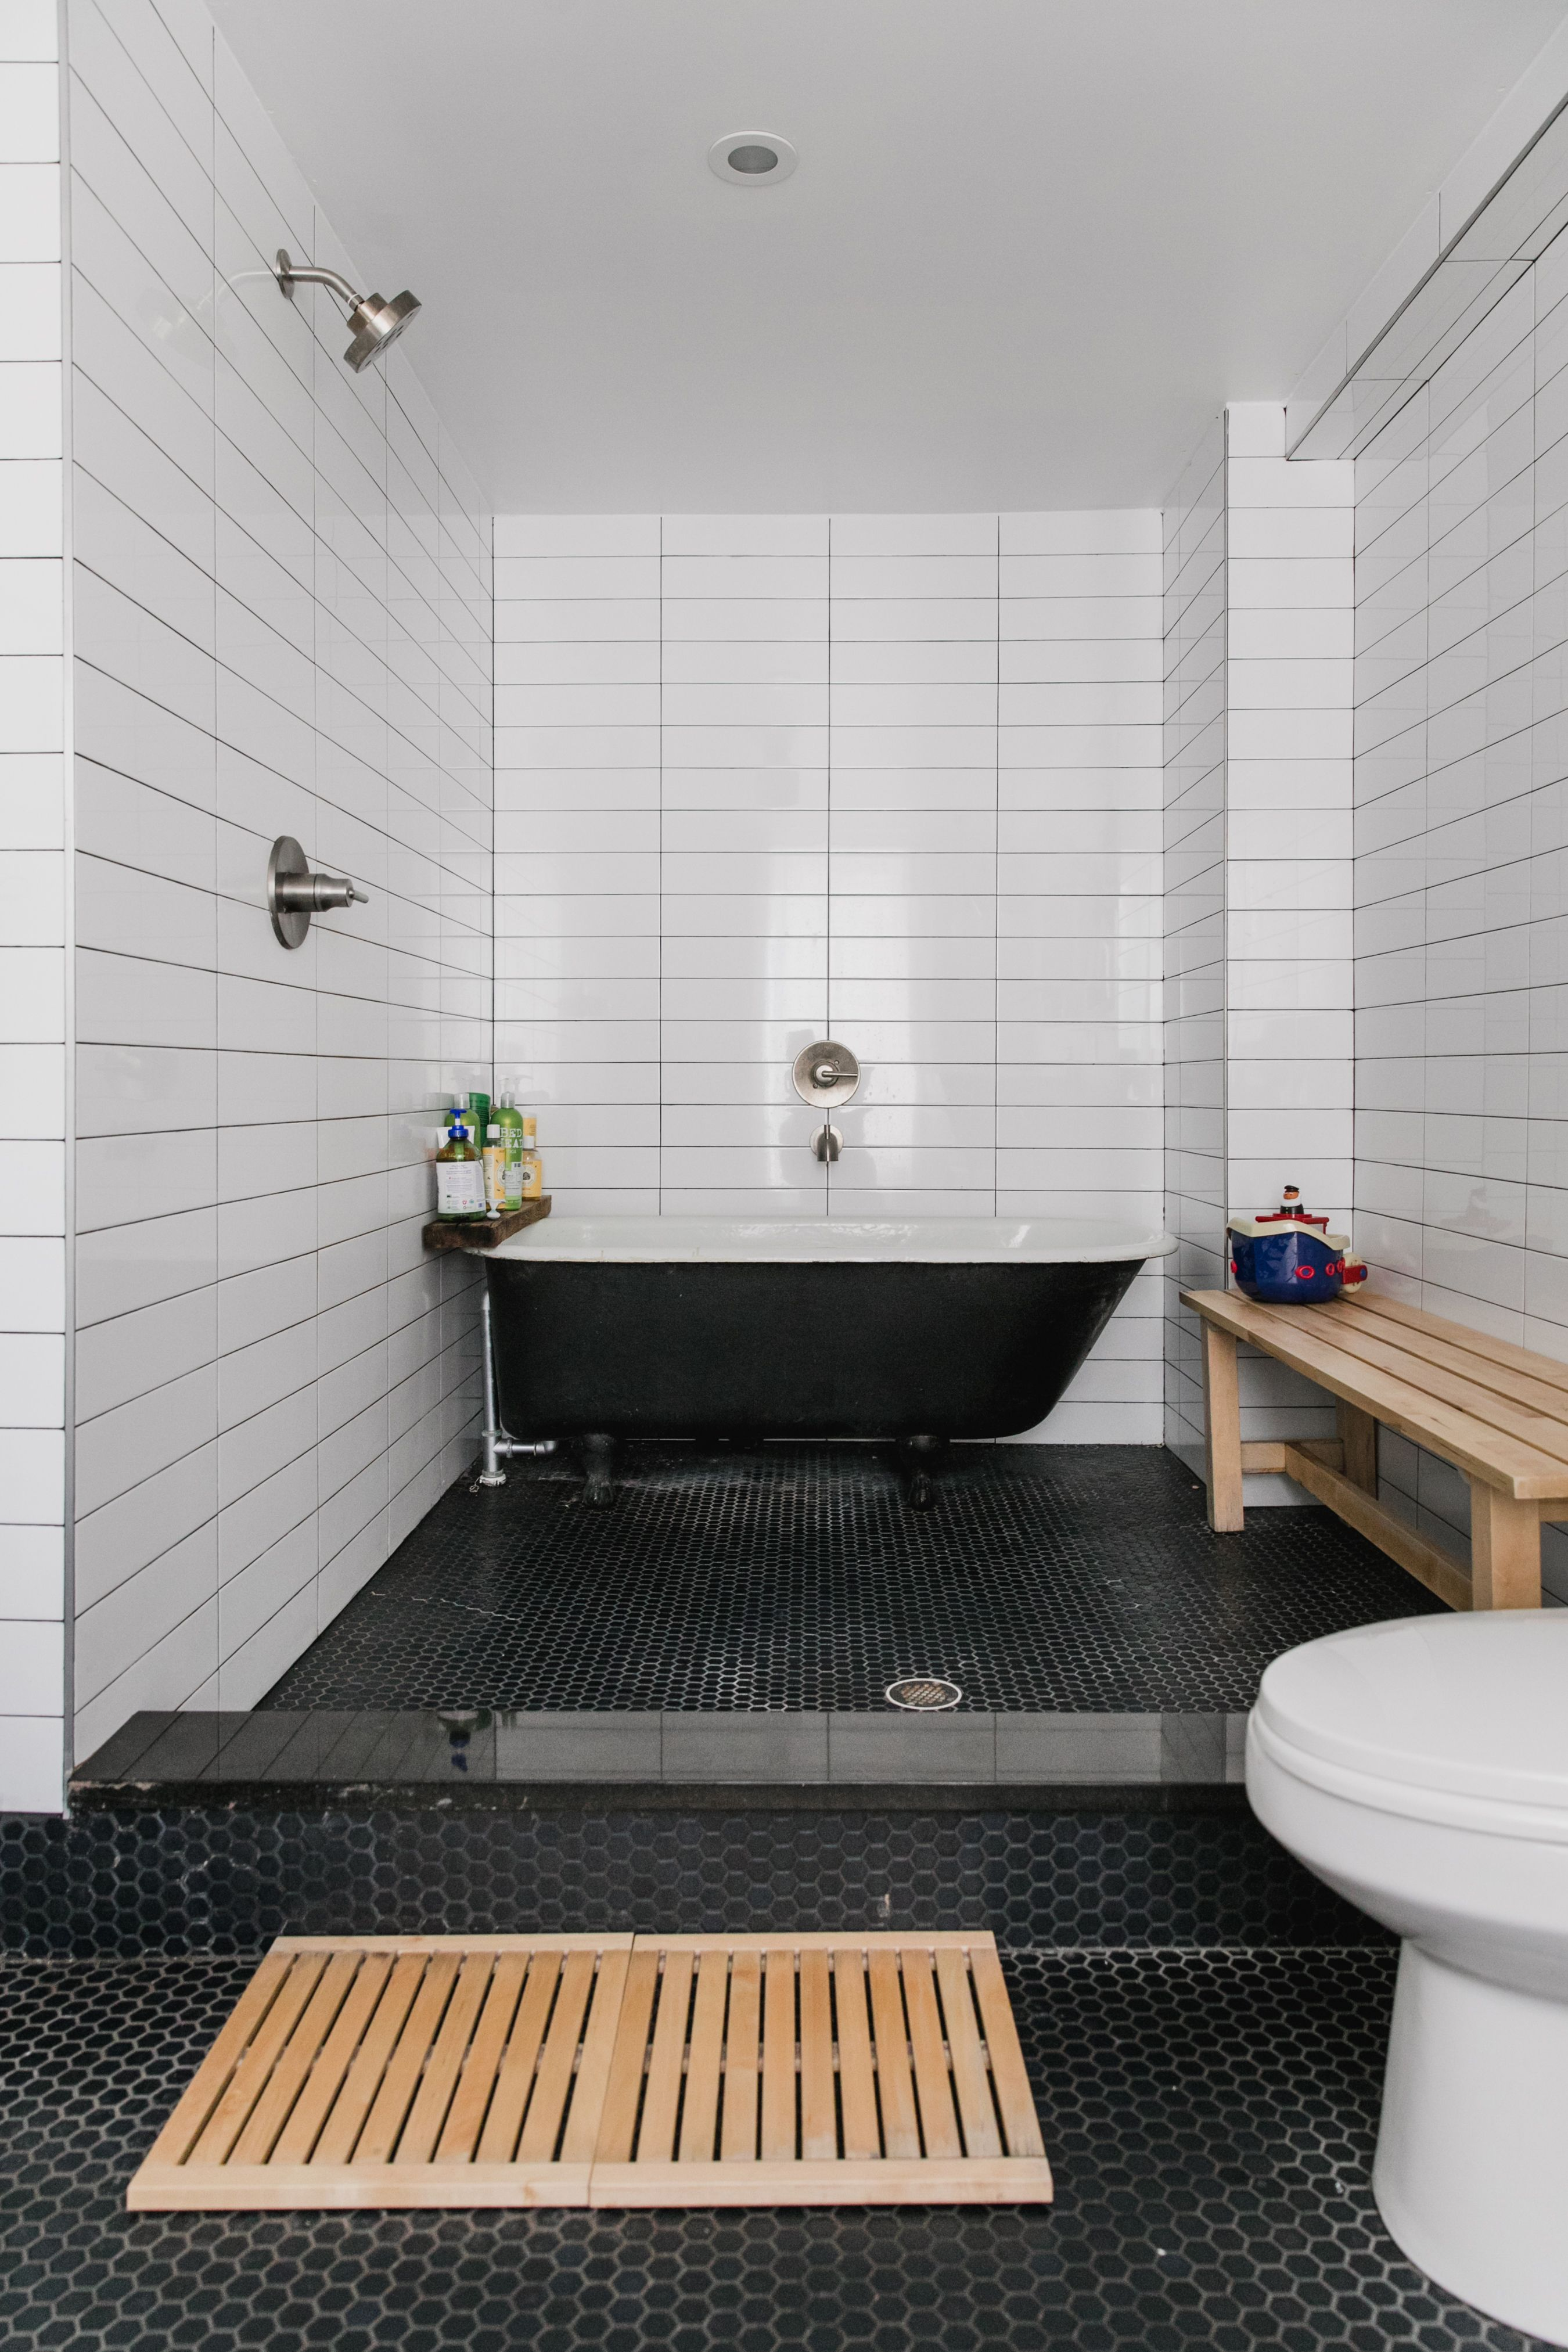 The Gorgeous Bathroom Style bo Perfect for a Tight Bud